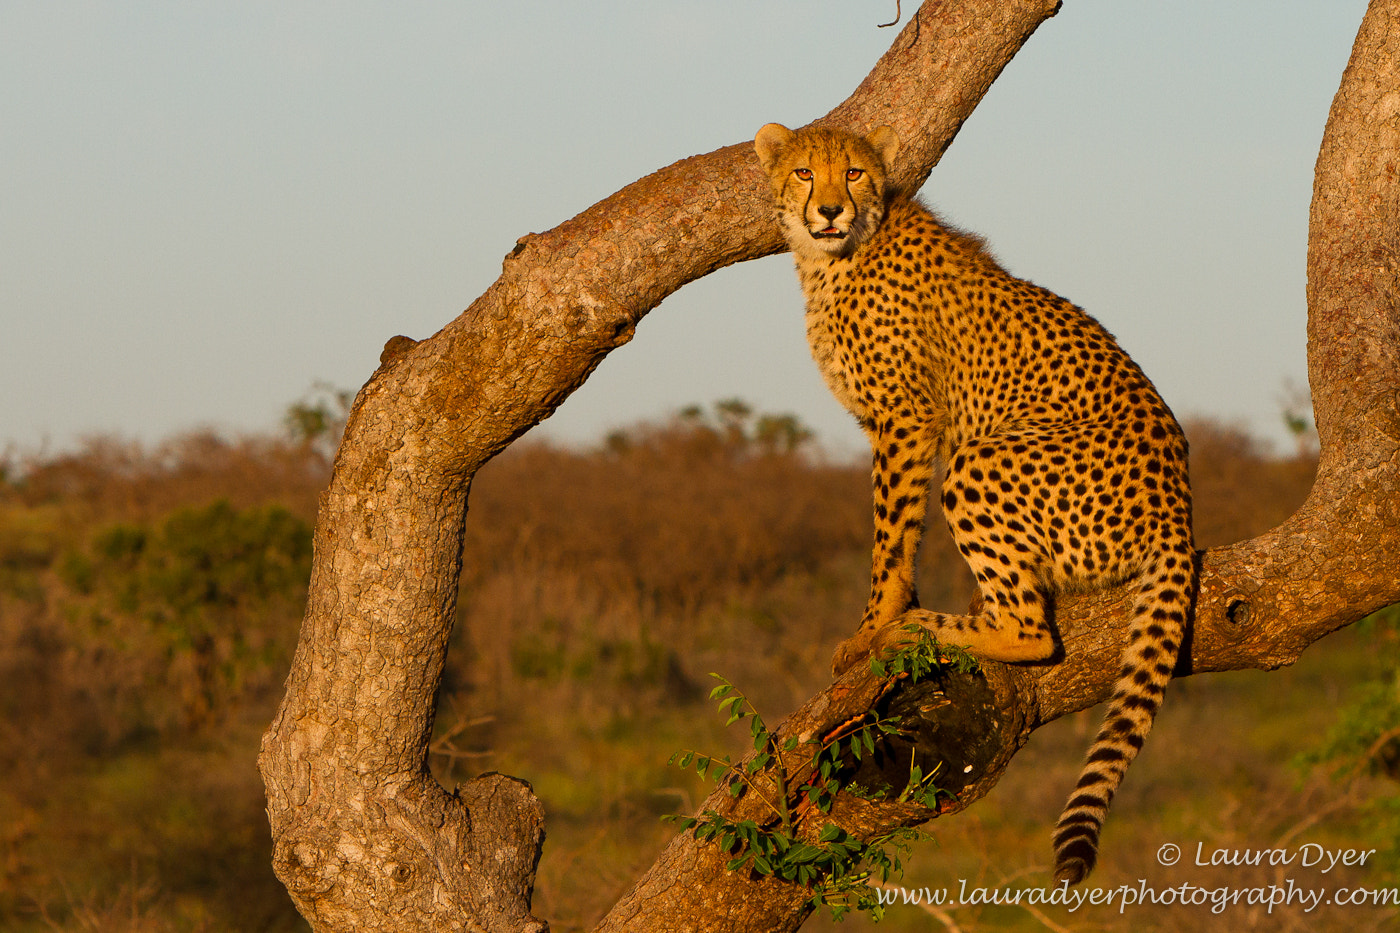 Photograph Cheetah lookout by Laura Dyer on 500px